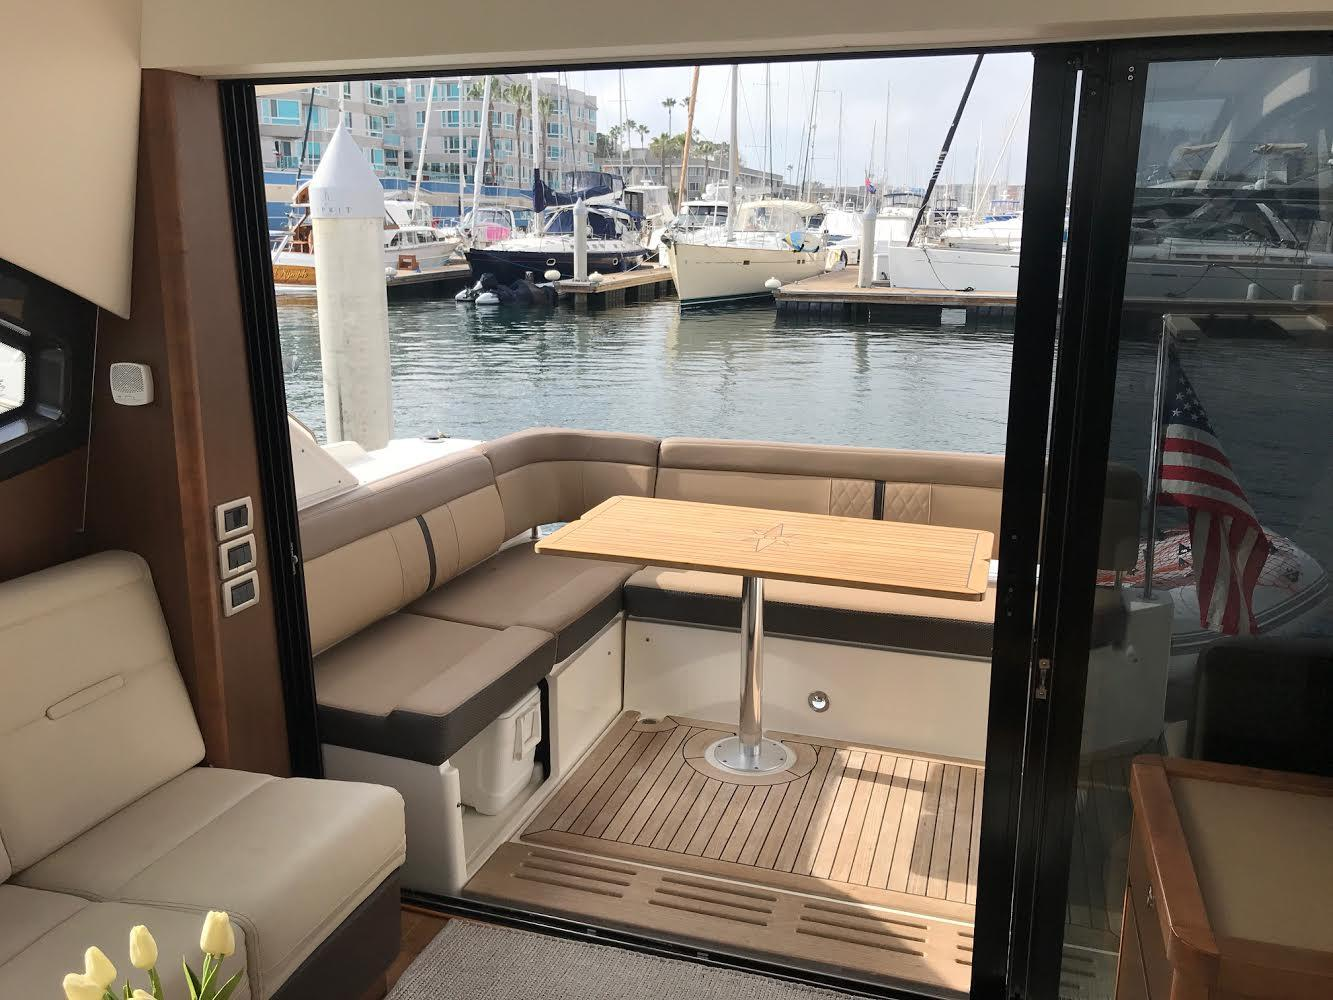 2016 Sea Ray 400 Sundancer #TB8690BB inventory image at Sun Country Coastal in Newport Beach